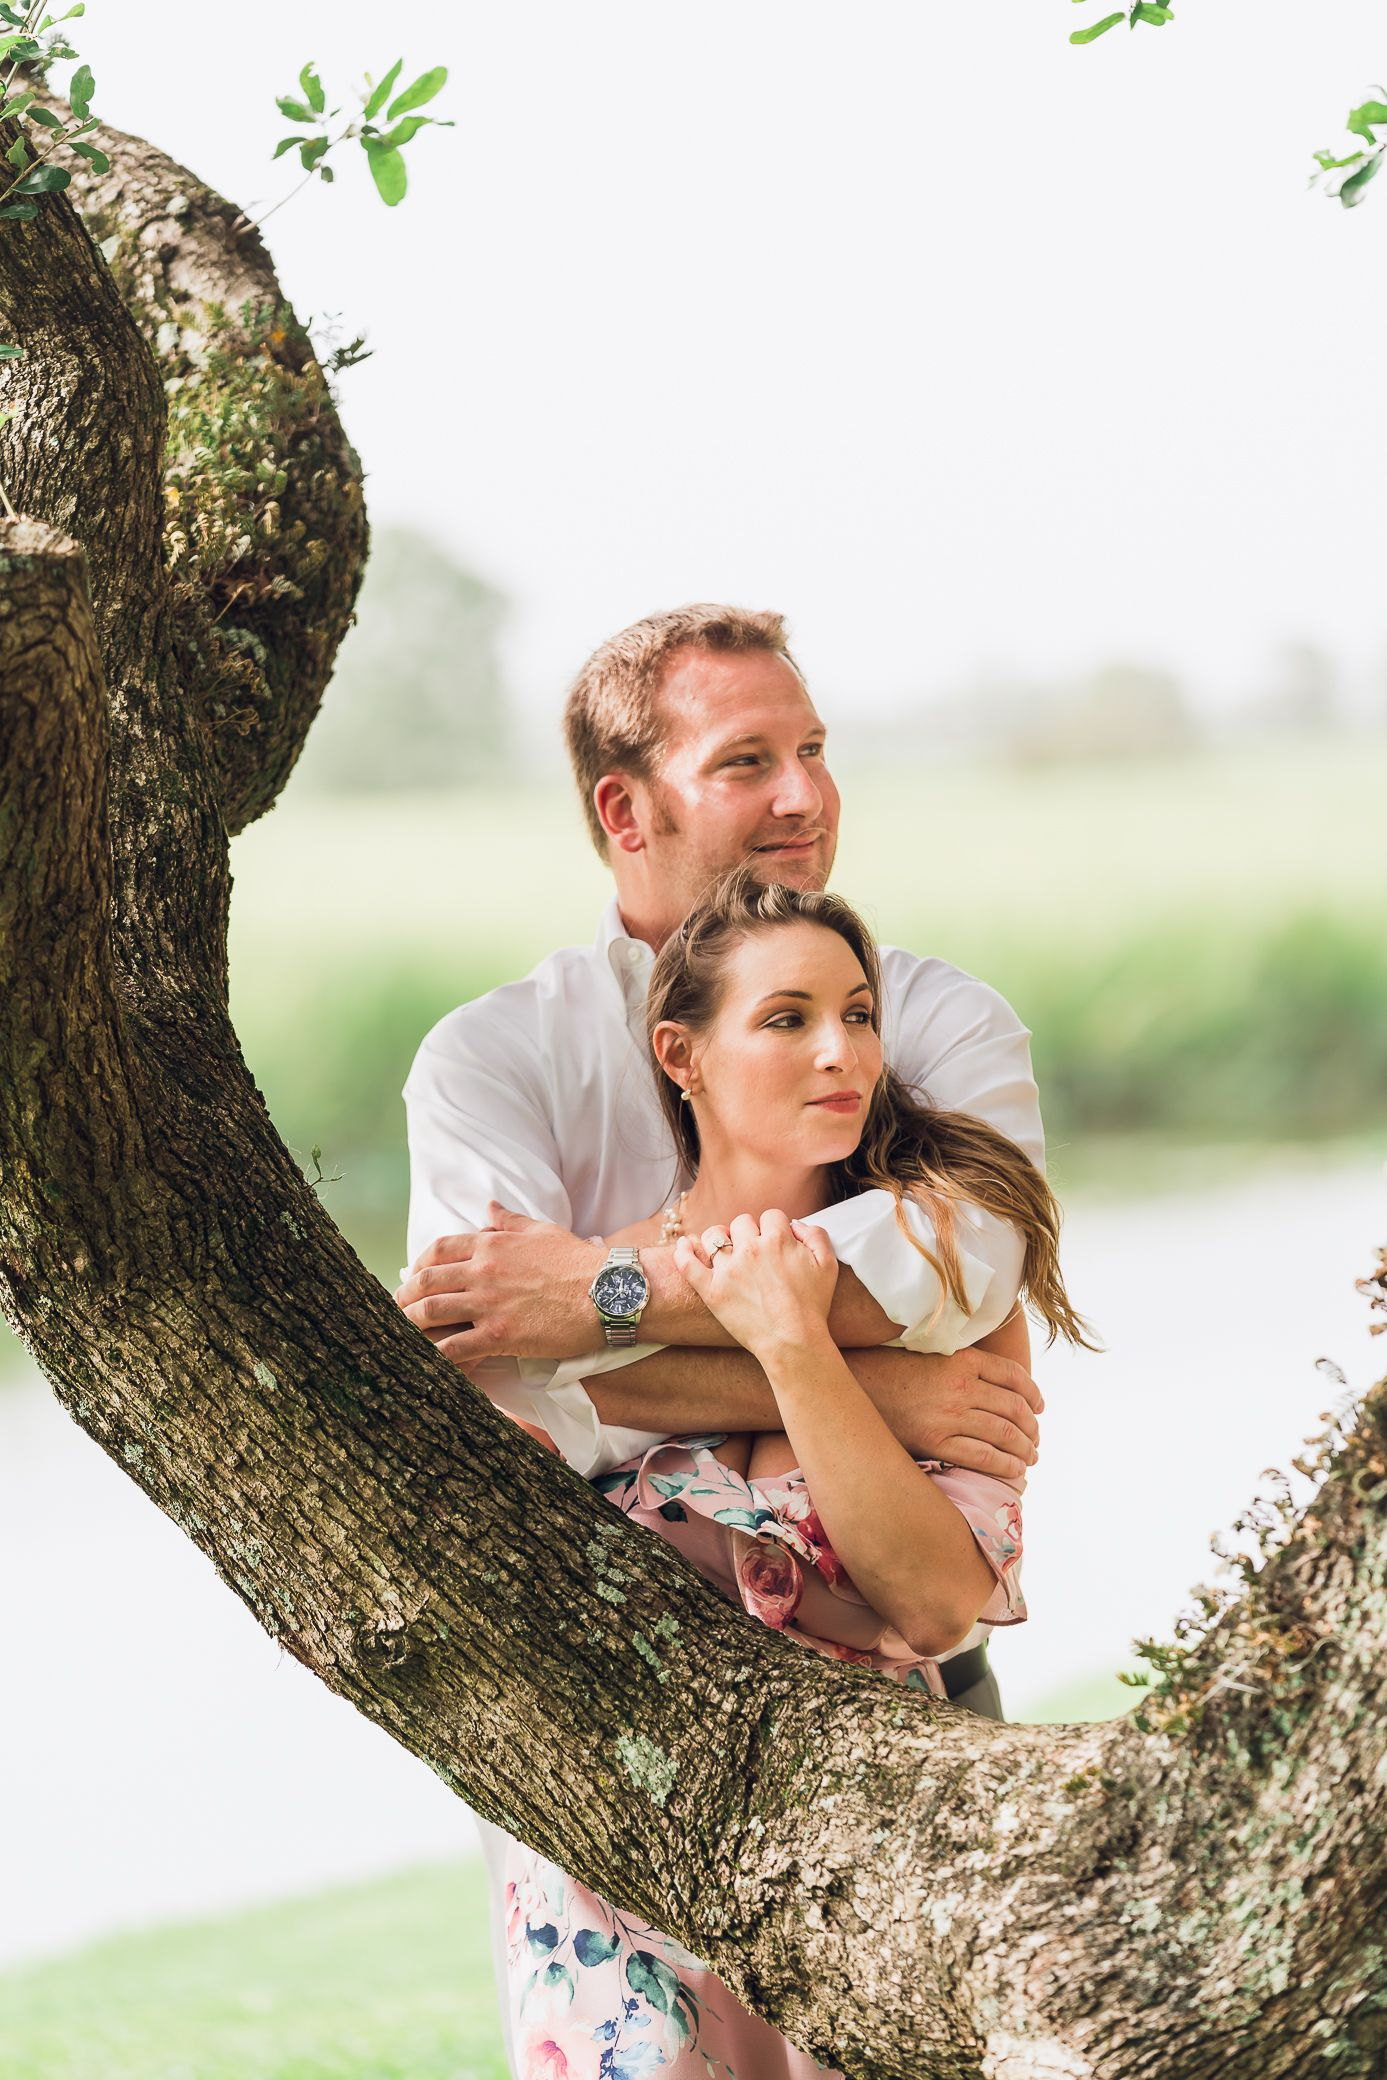 Future bride & groom Standing in front of a tree for their engagement photoshoot at Caledonia Gold & Fish Club